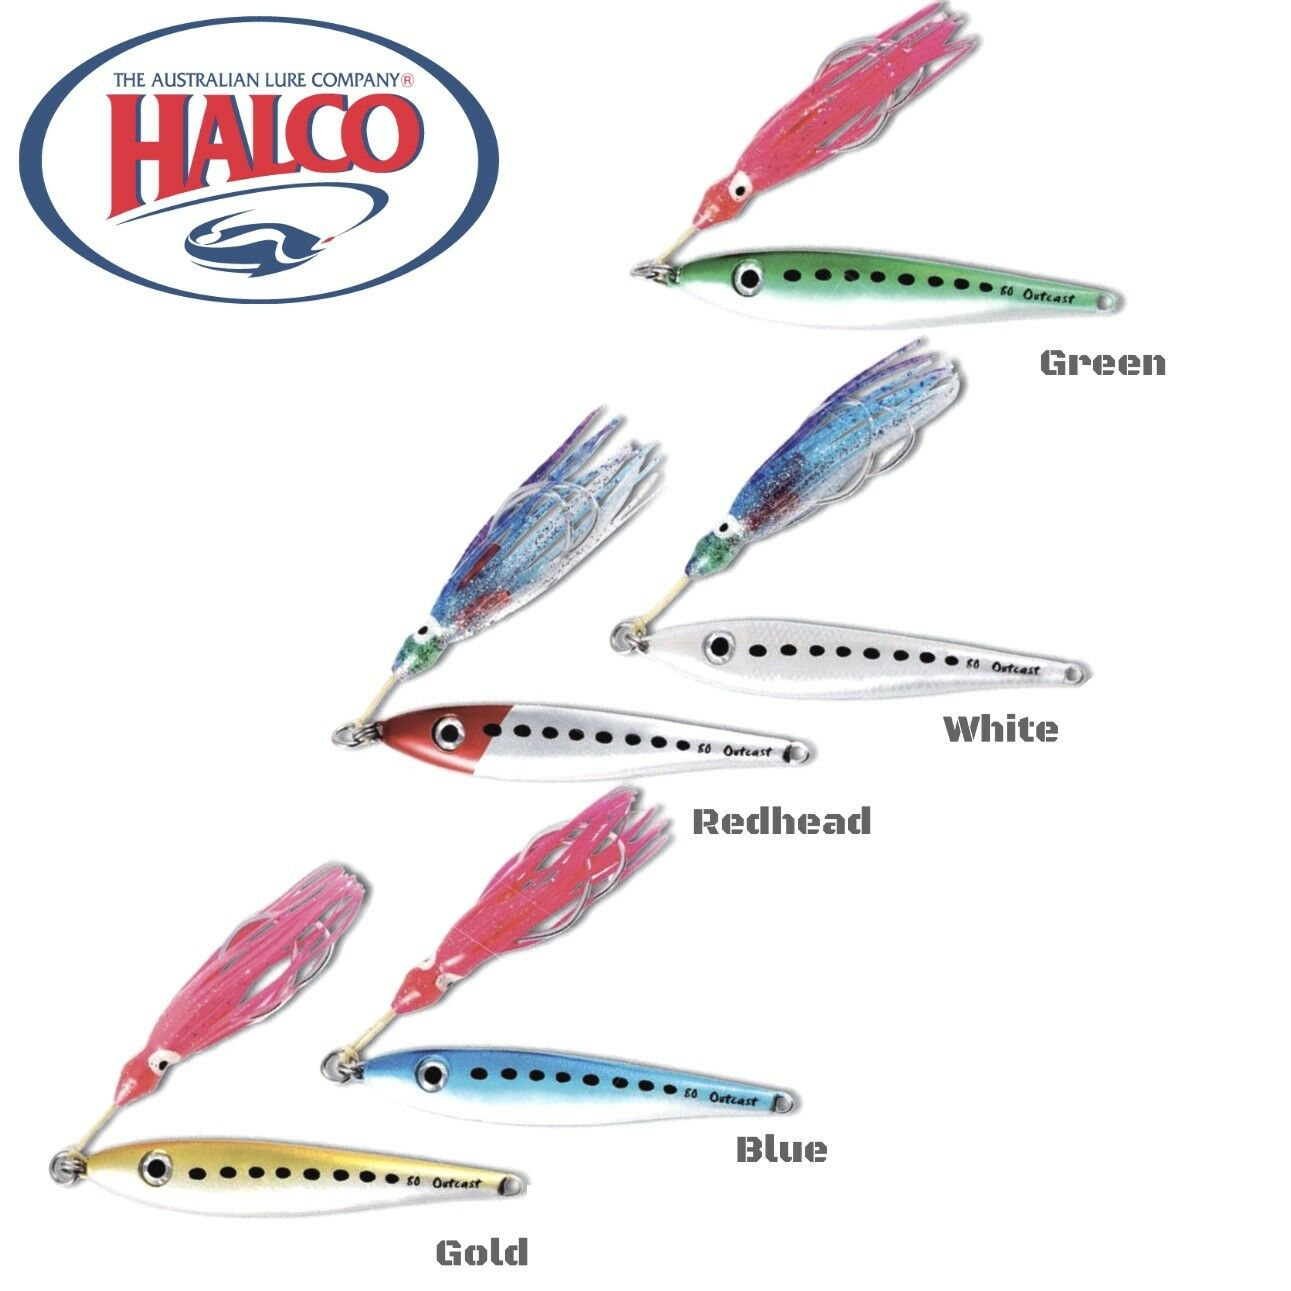 Halco Rear Weighted Baitfish//Profiled Metal Jig Lure Outcast 40G